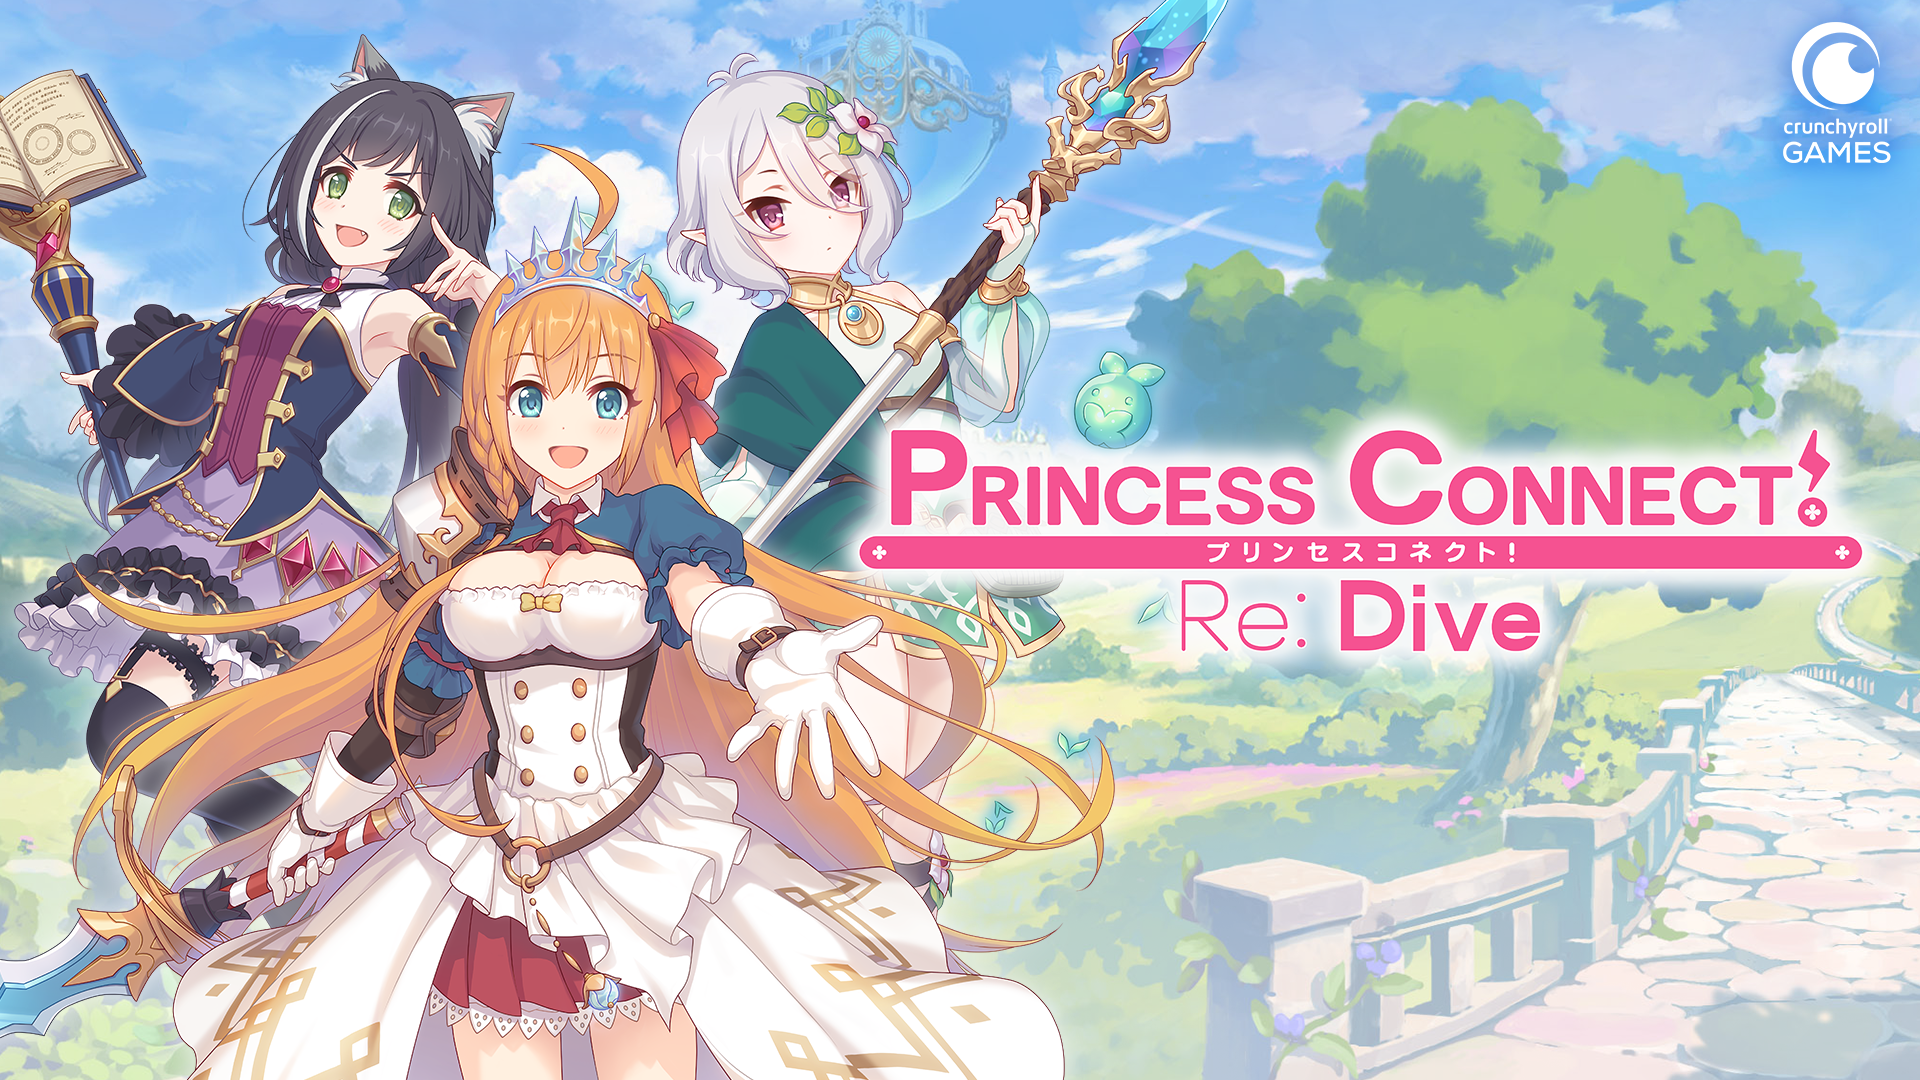 Princess Connect! Re: Dive Release Date and Gacha Game Review